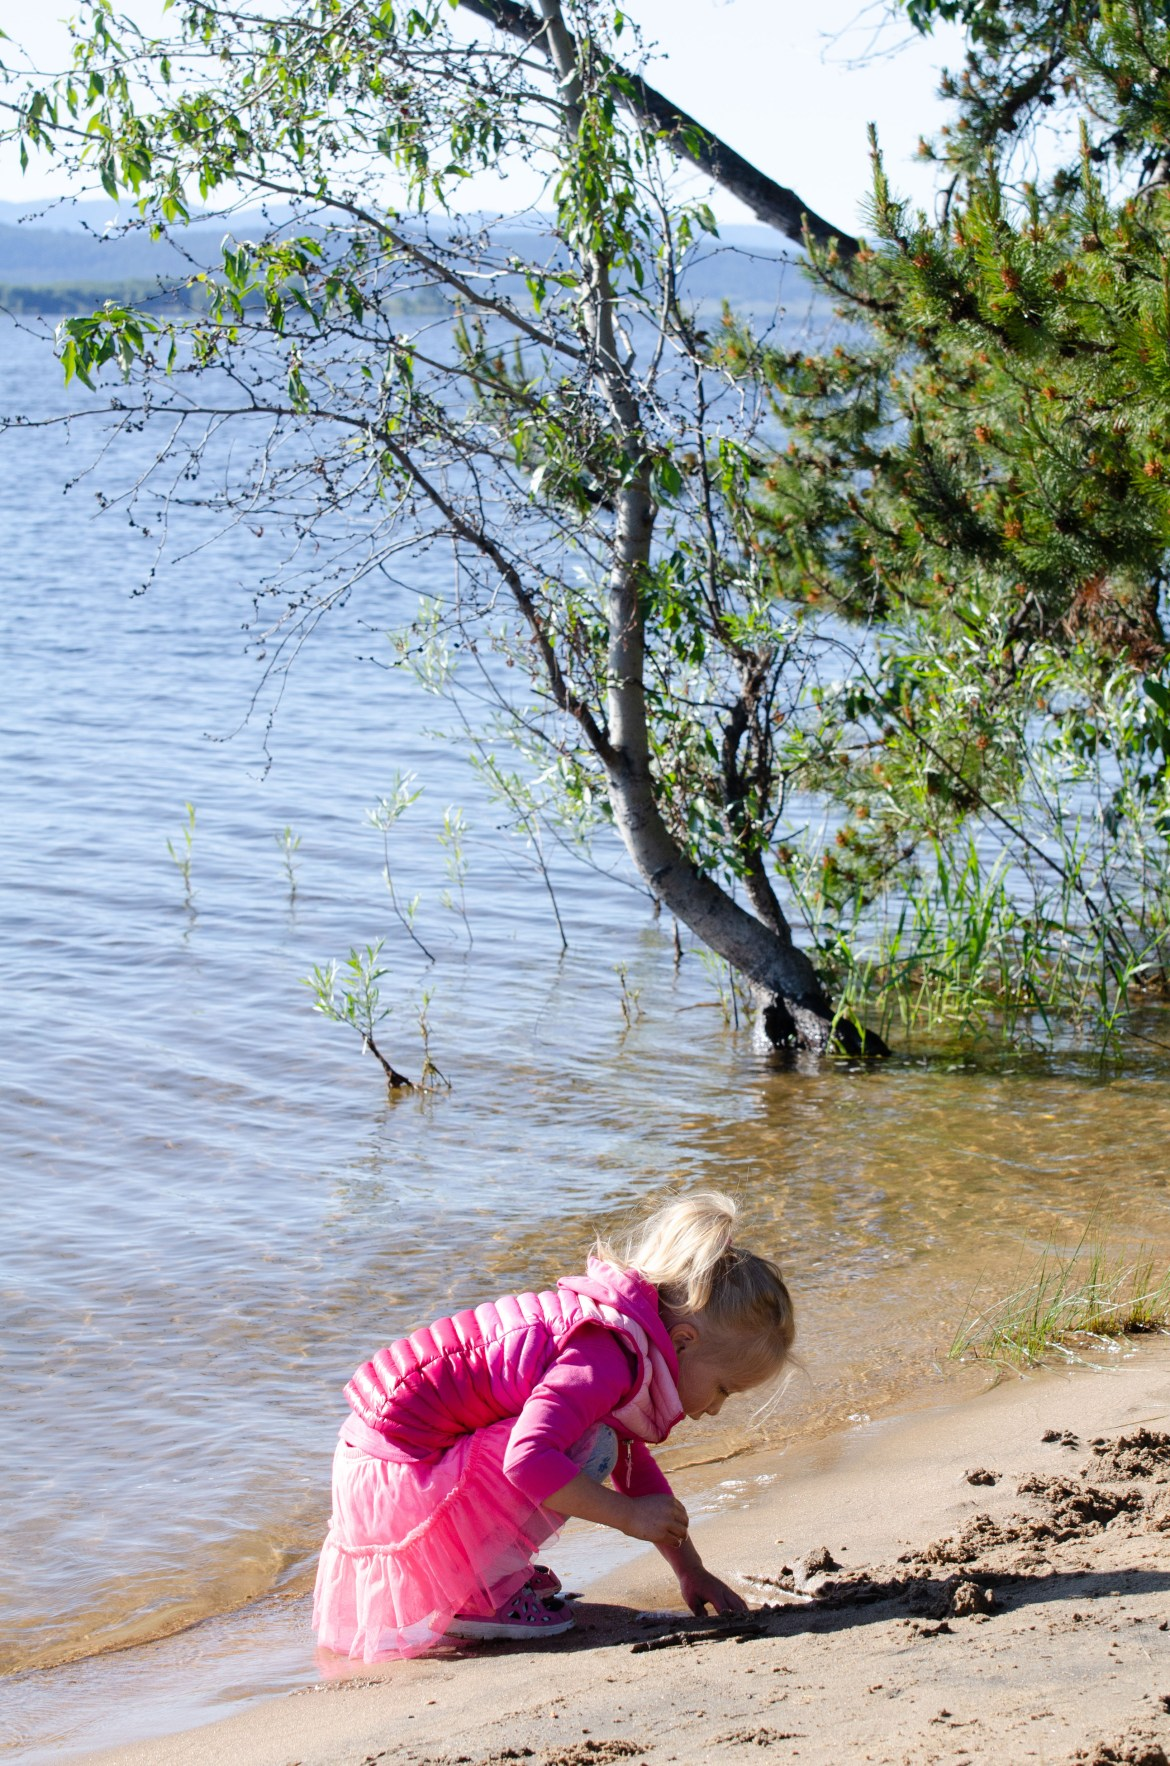 A young girl plays on the sandy shore of Cascade Lake, at Idaho's Cascade Lake State Park near Tamarack Resort and Donnelly, Idaho.  She wears a pink down jacket, pink sneakers, and a pink tulle skirt.  Trees and grasses grow in the water at the lake's shore.